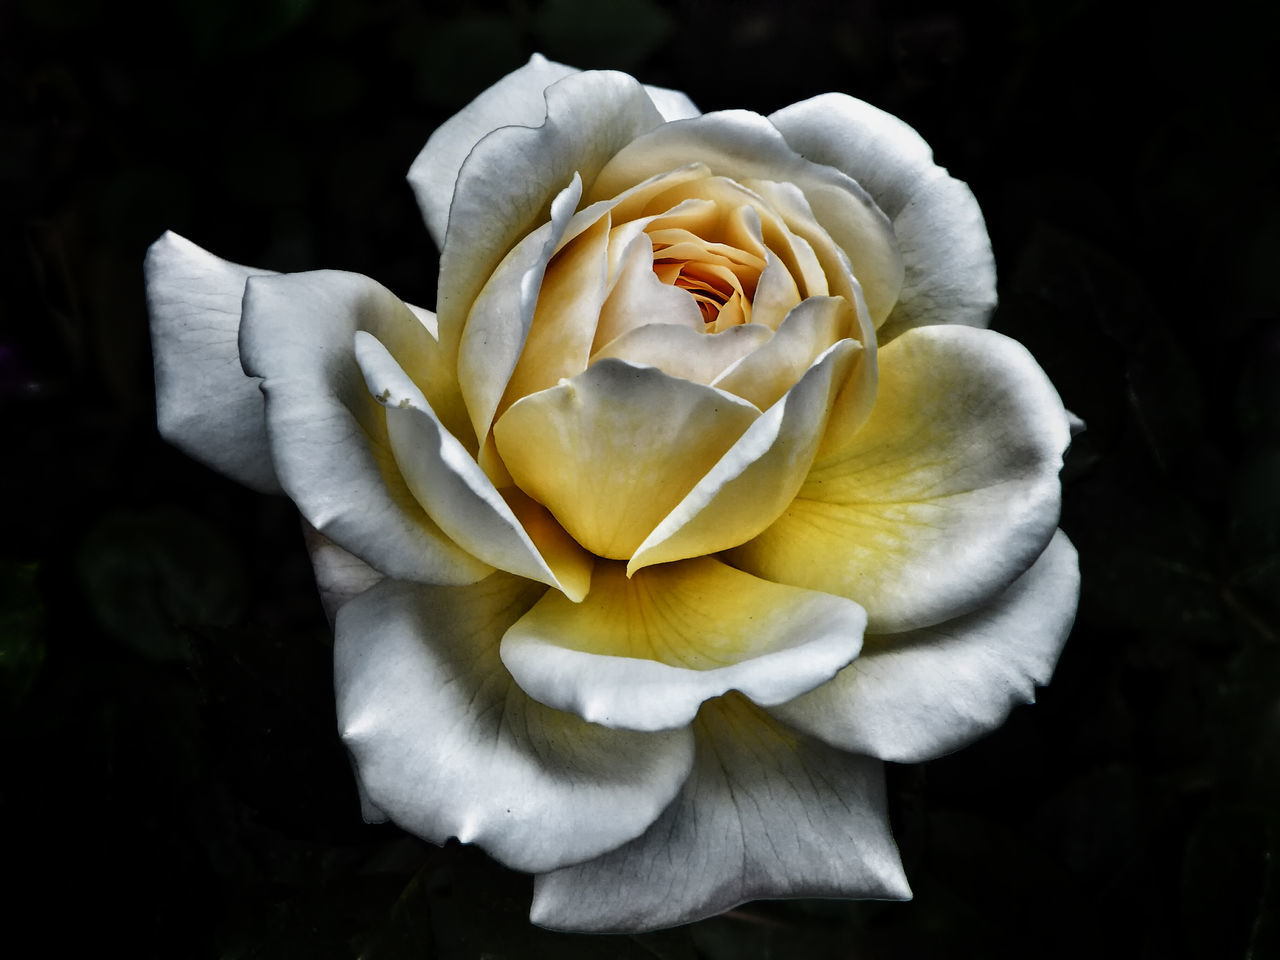 yellow rose Beauty In Nature Close-up Day Flower Flower Head Fragility Freshness Growth Nature No People Outdoors Petal Plant Roses Rosé White Rose Yellow Rose